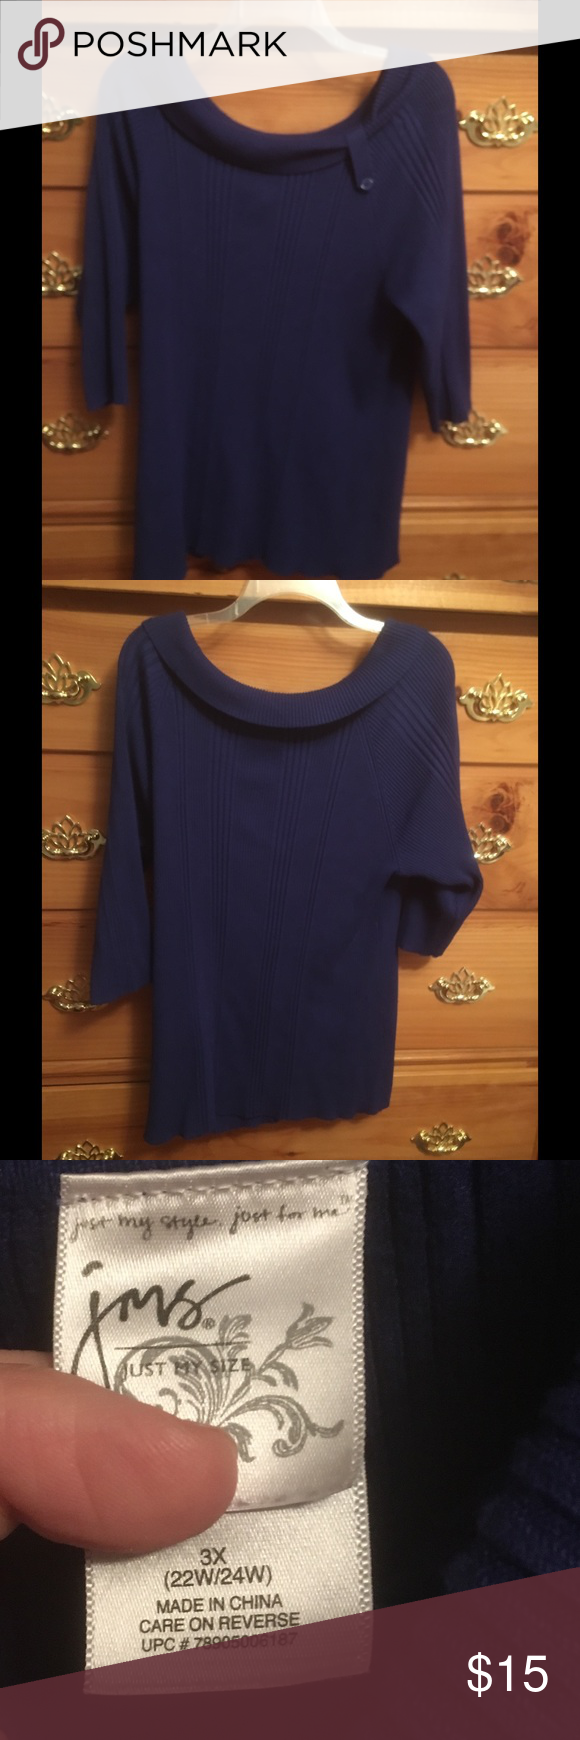 Cute Cobalt blue sweater 3X ‼️CLEARANCE SALE ‼ ‼ Pretty Cobalt ...